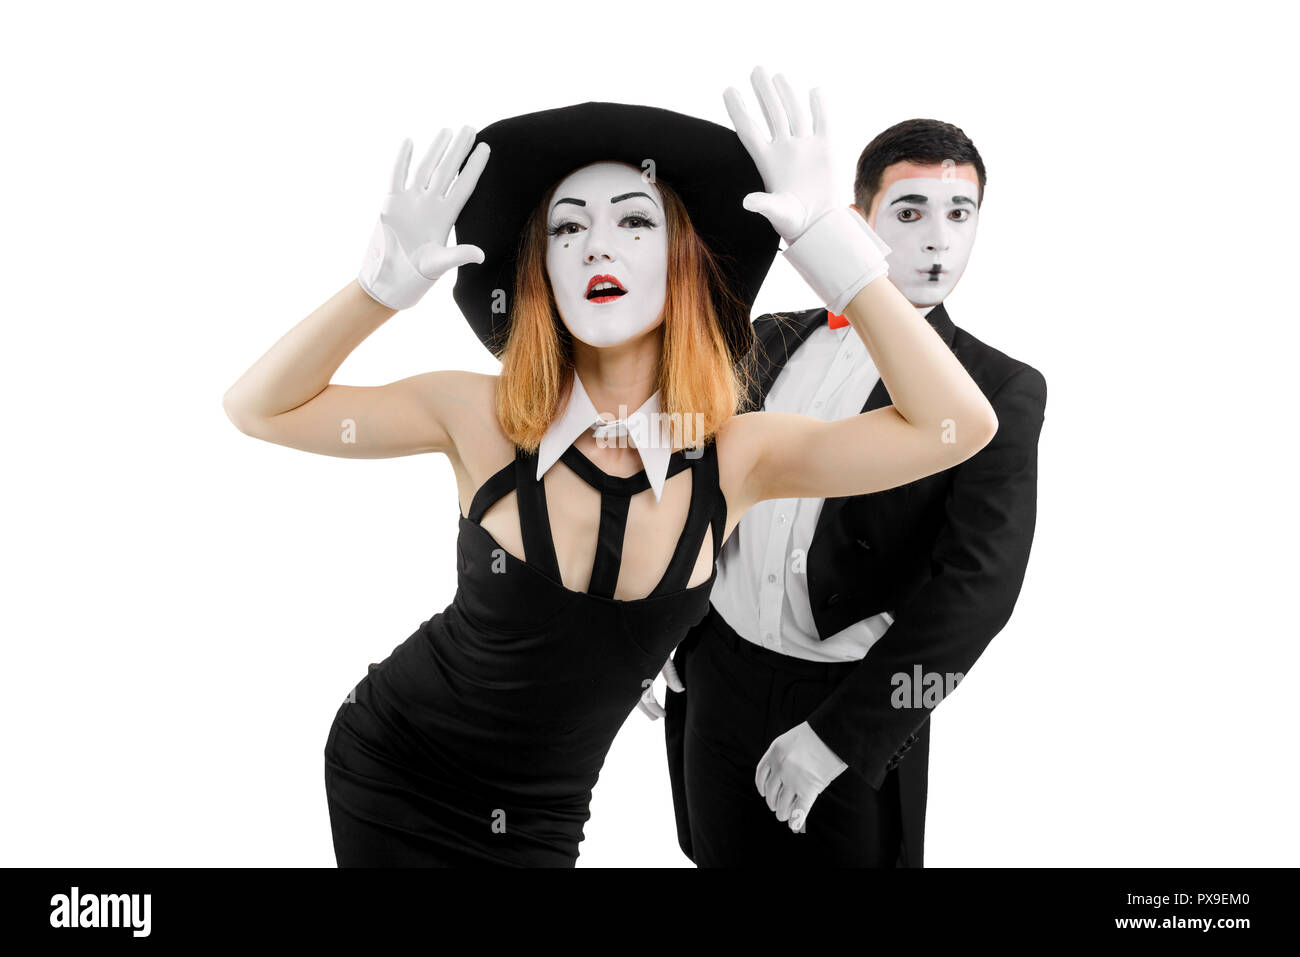 Duo of mime artists - Stock Image